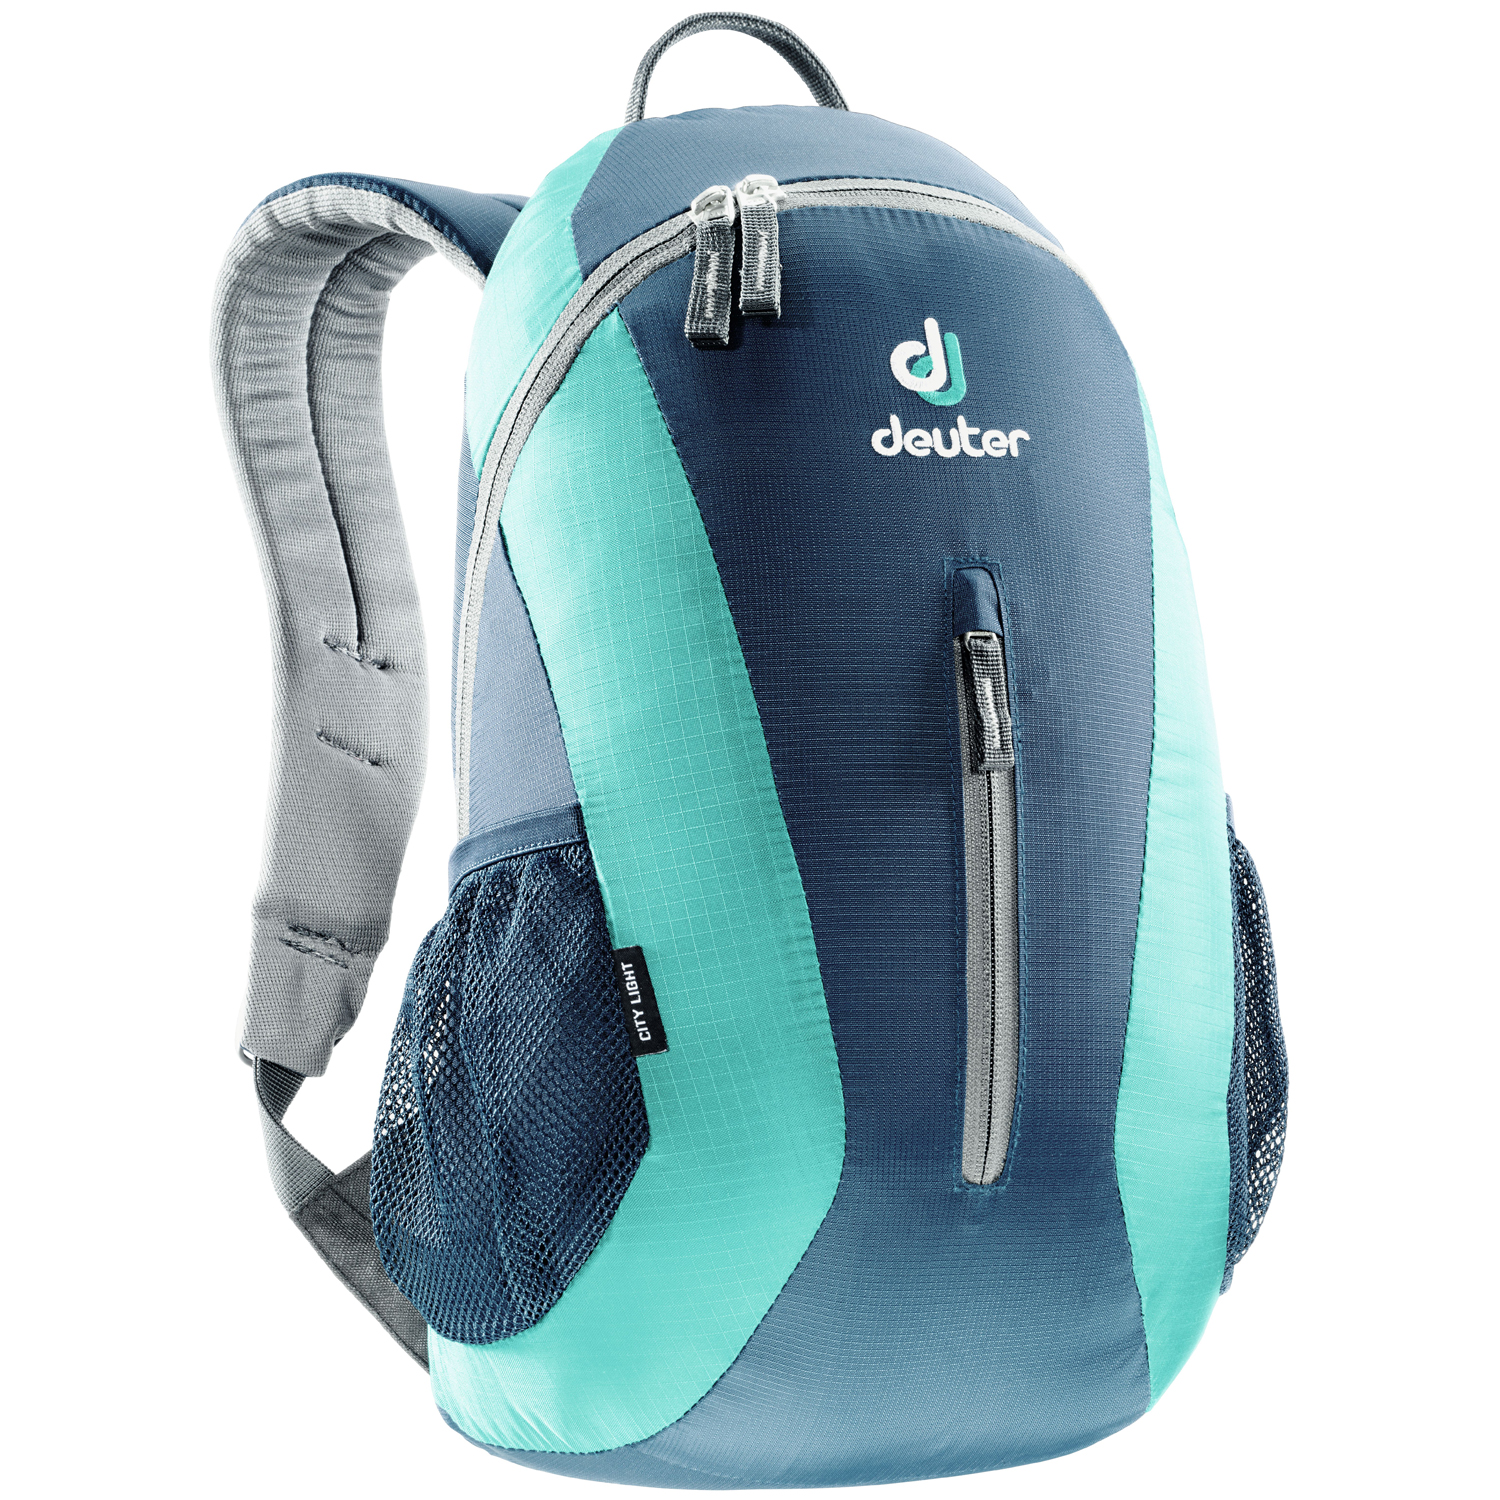 Deuter Nylonrucksack City Light Dunkelblau